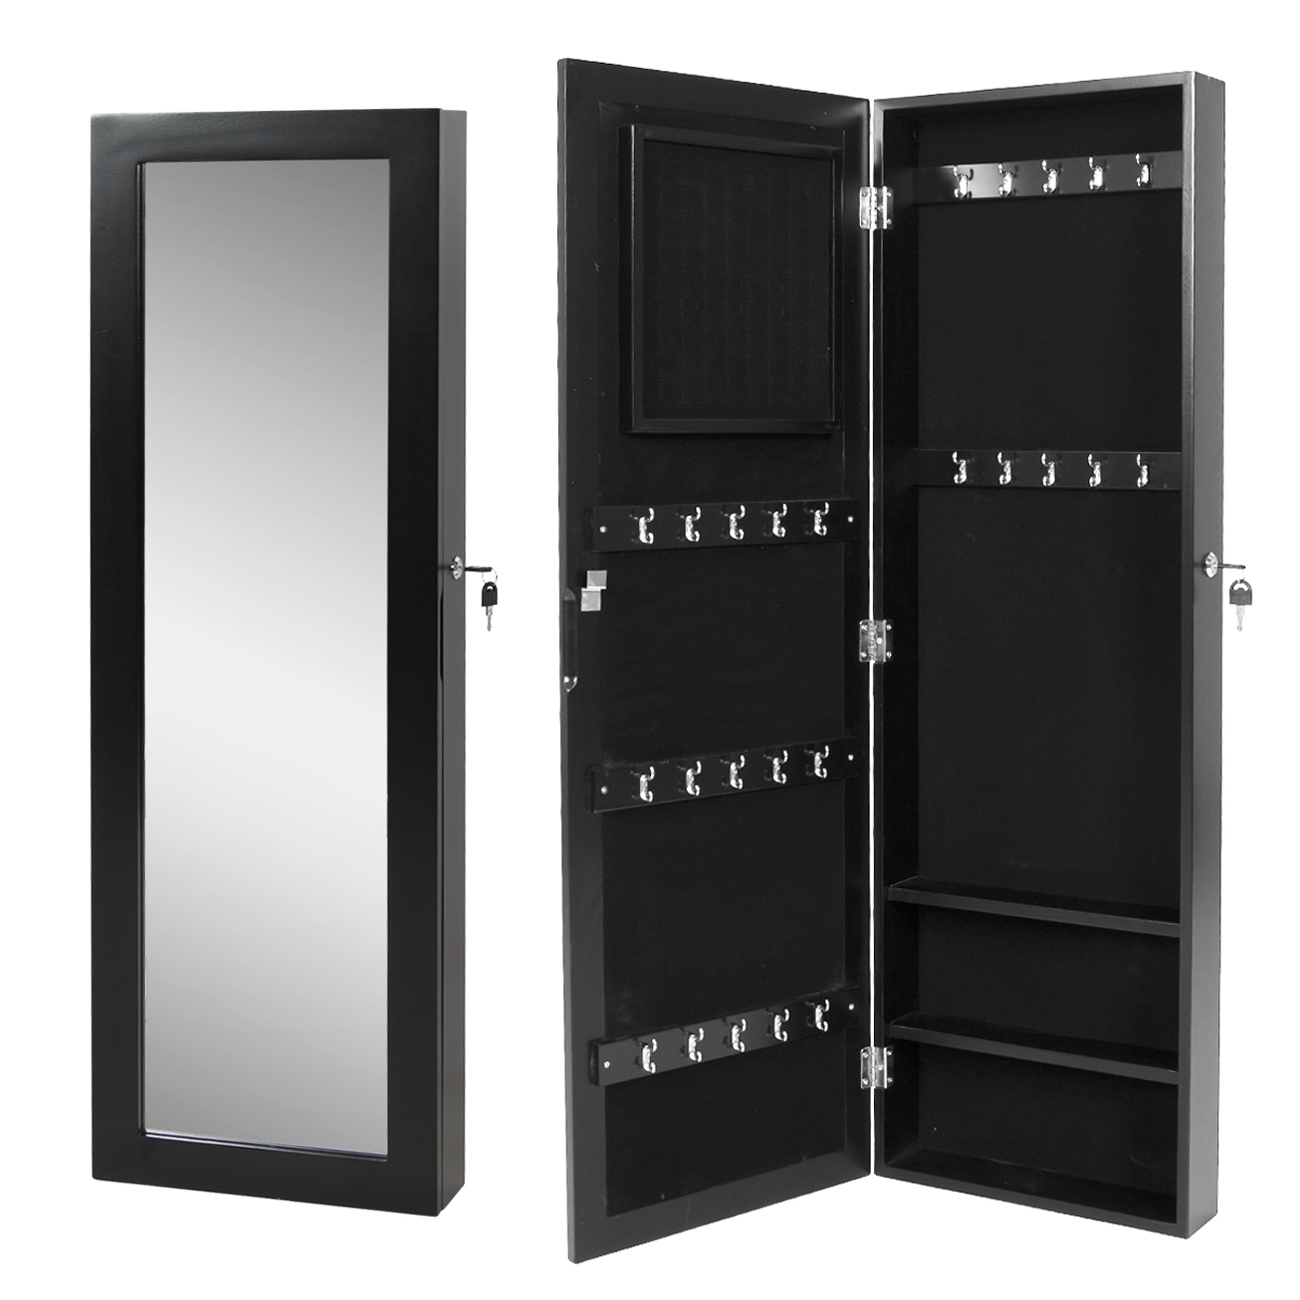 mirrored jewelry cabinet armoire wall mount organizer storage case with key set ebay. Black Bedroom Furniture Sets. Home Design Ideas